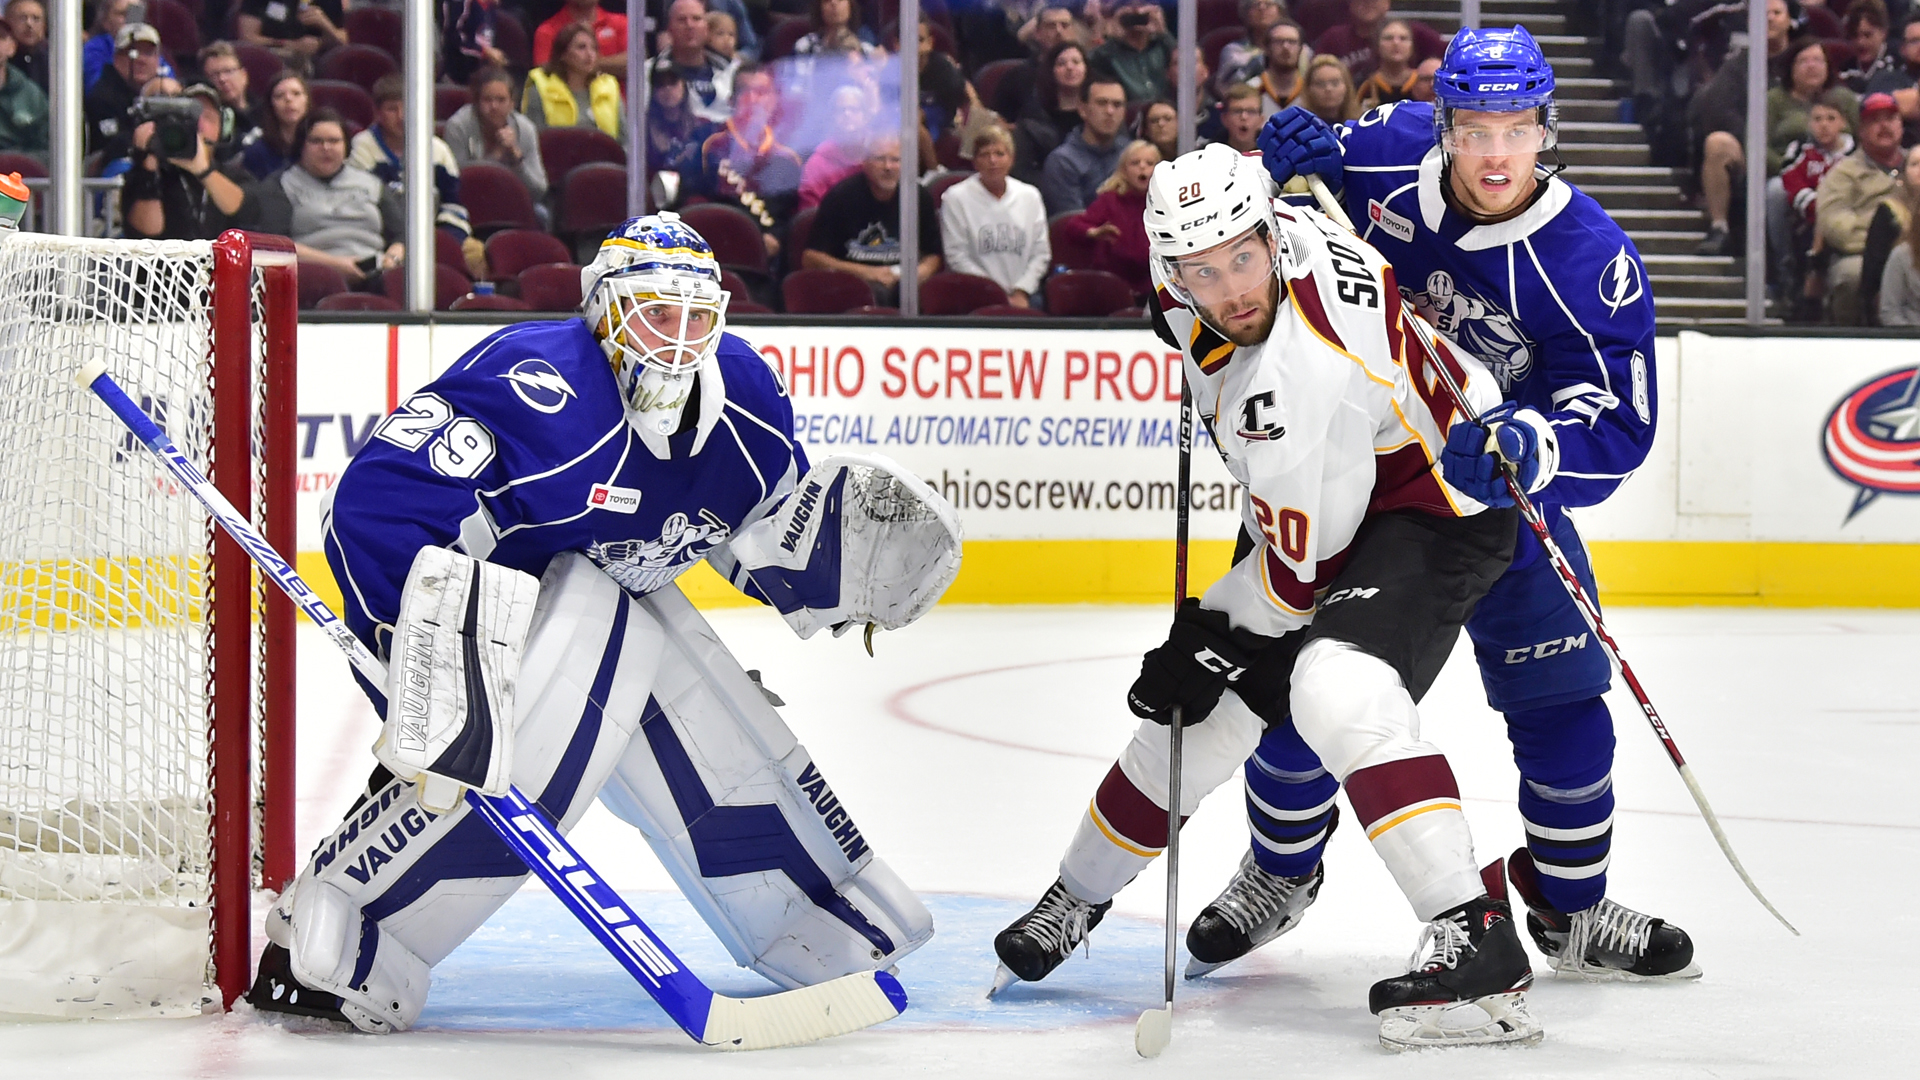 Crunch top Monsters, 2-1, for first win of the season